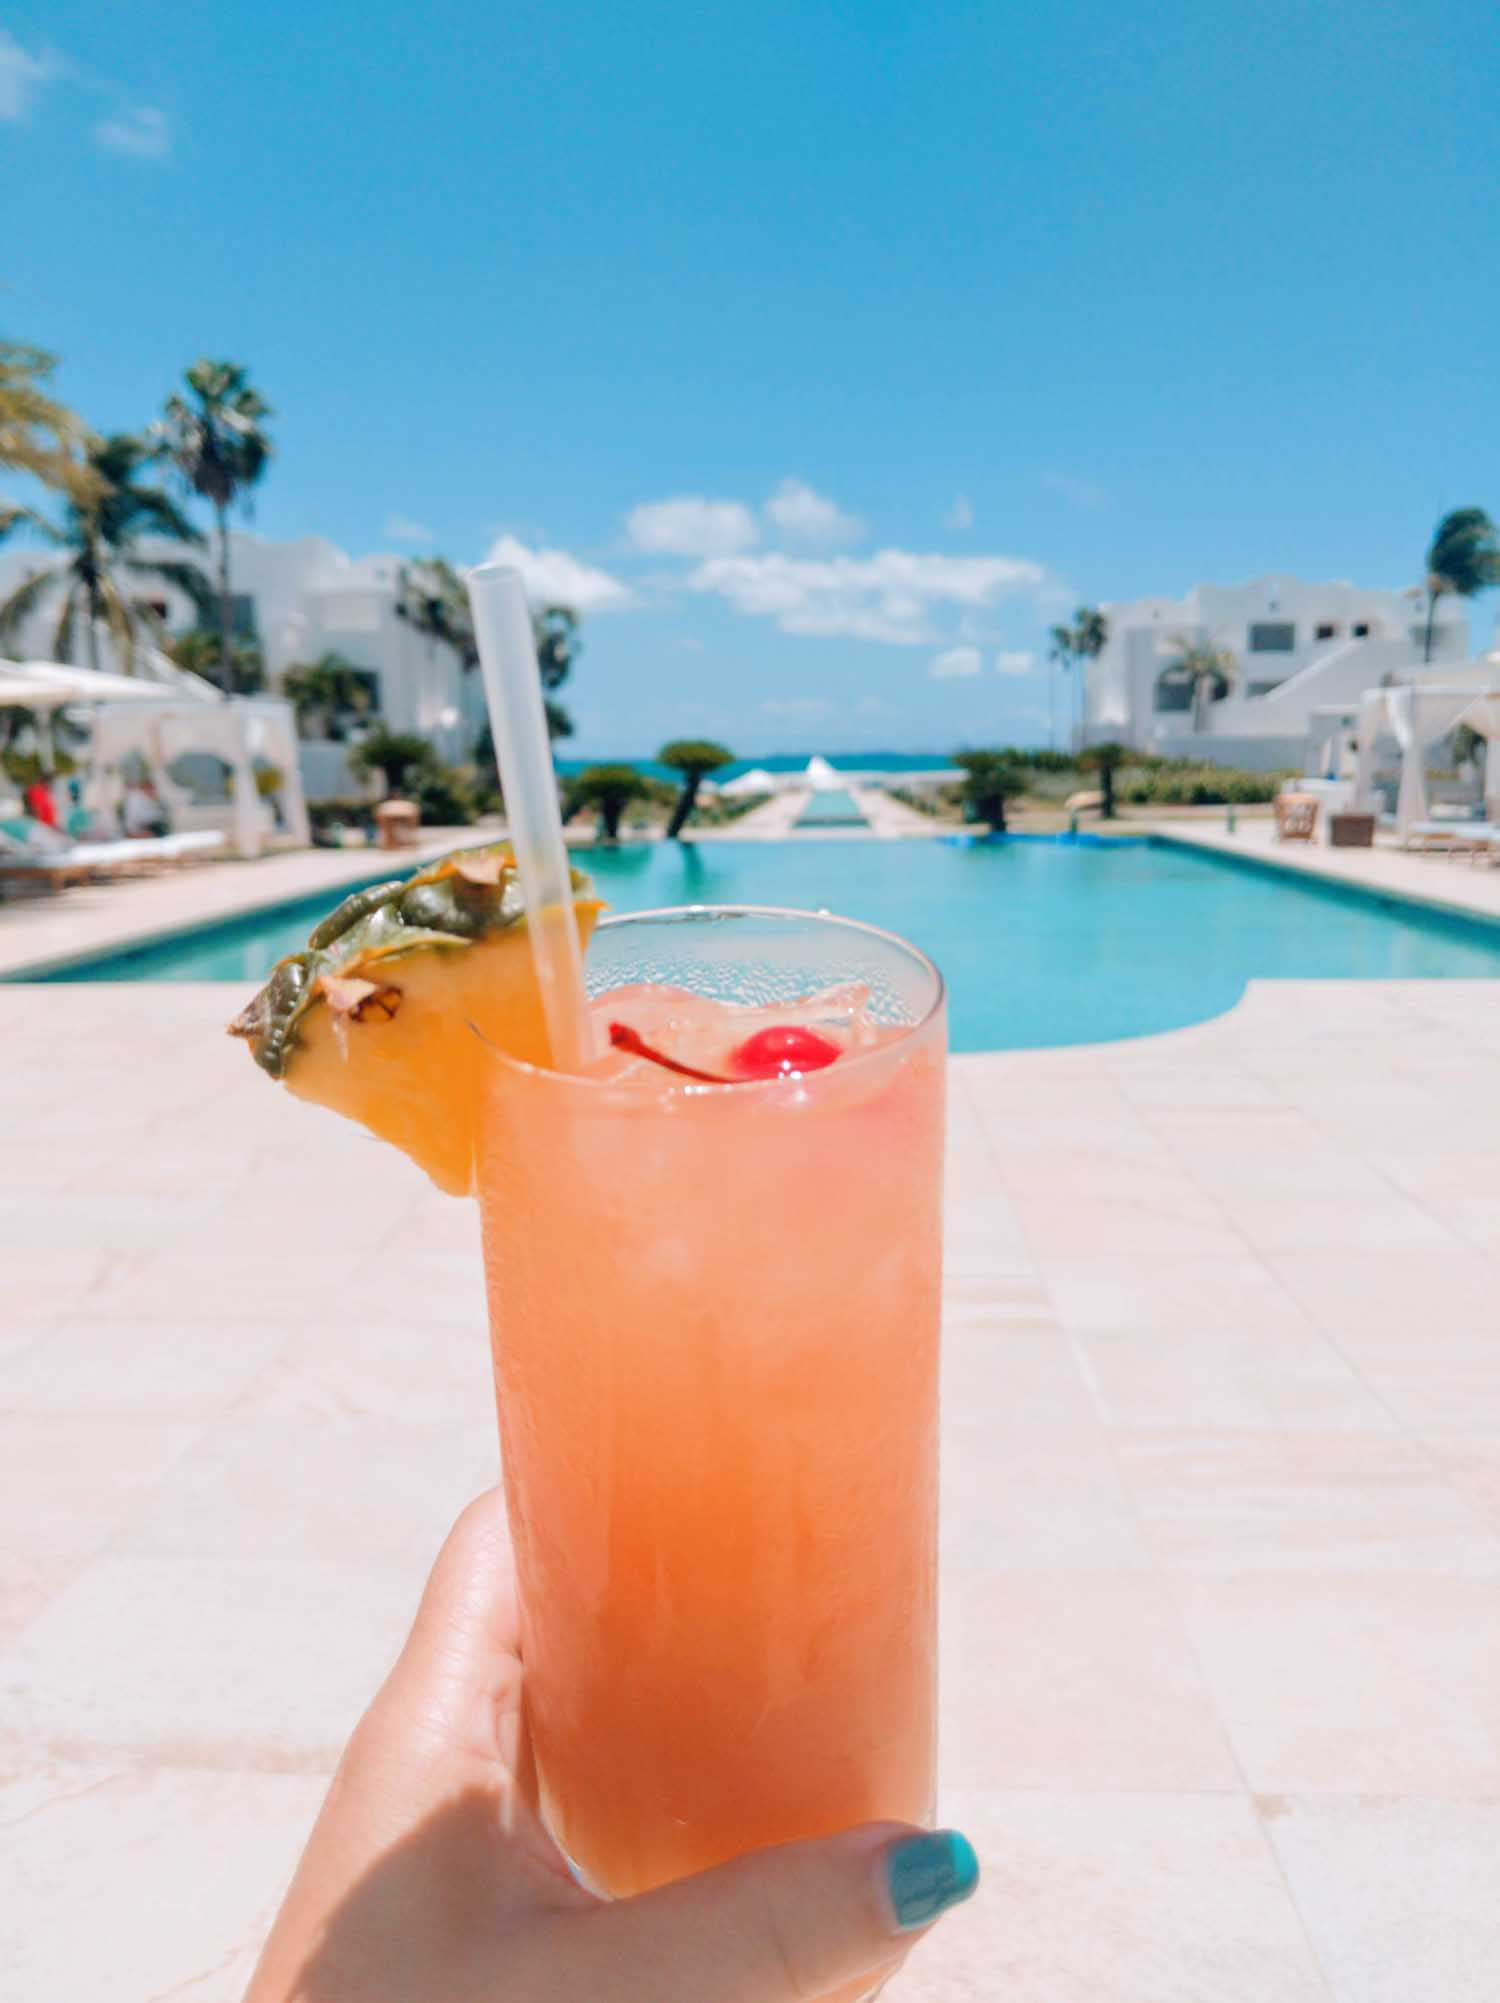 Rum punch in Anguilla welcome drink at Cuisinart.